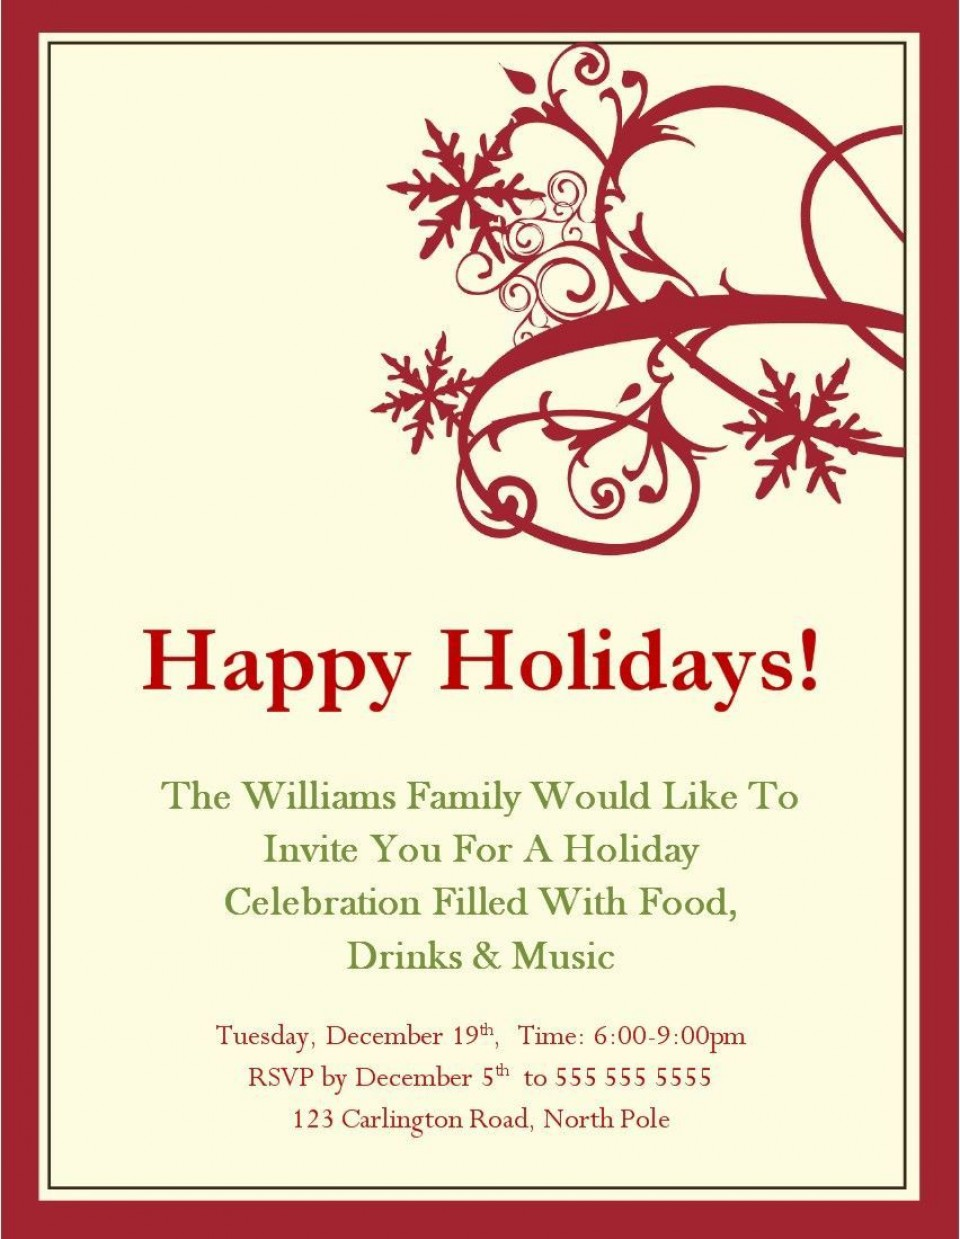 004 Exceptional Xma Party Invite Template Free Sample  Holiday Invitation Word Download Christma960